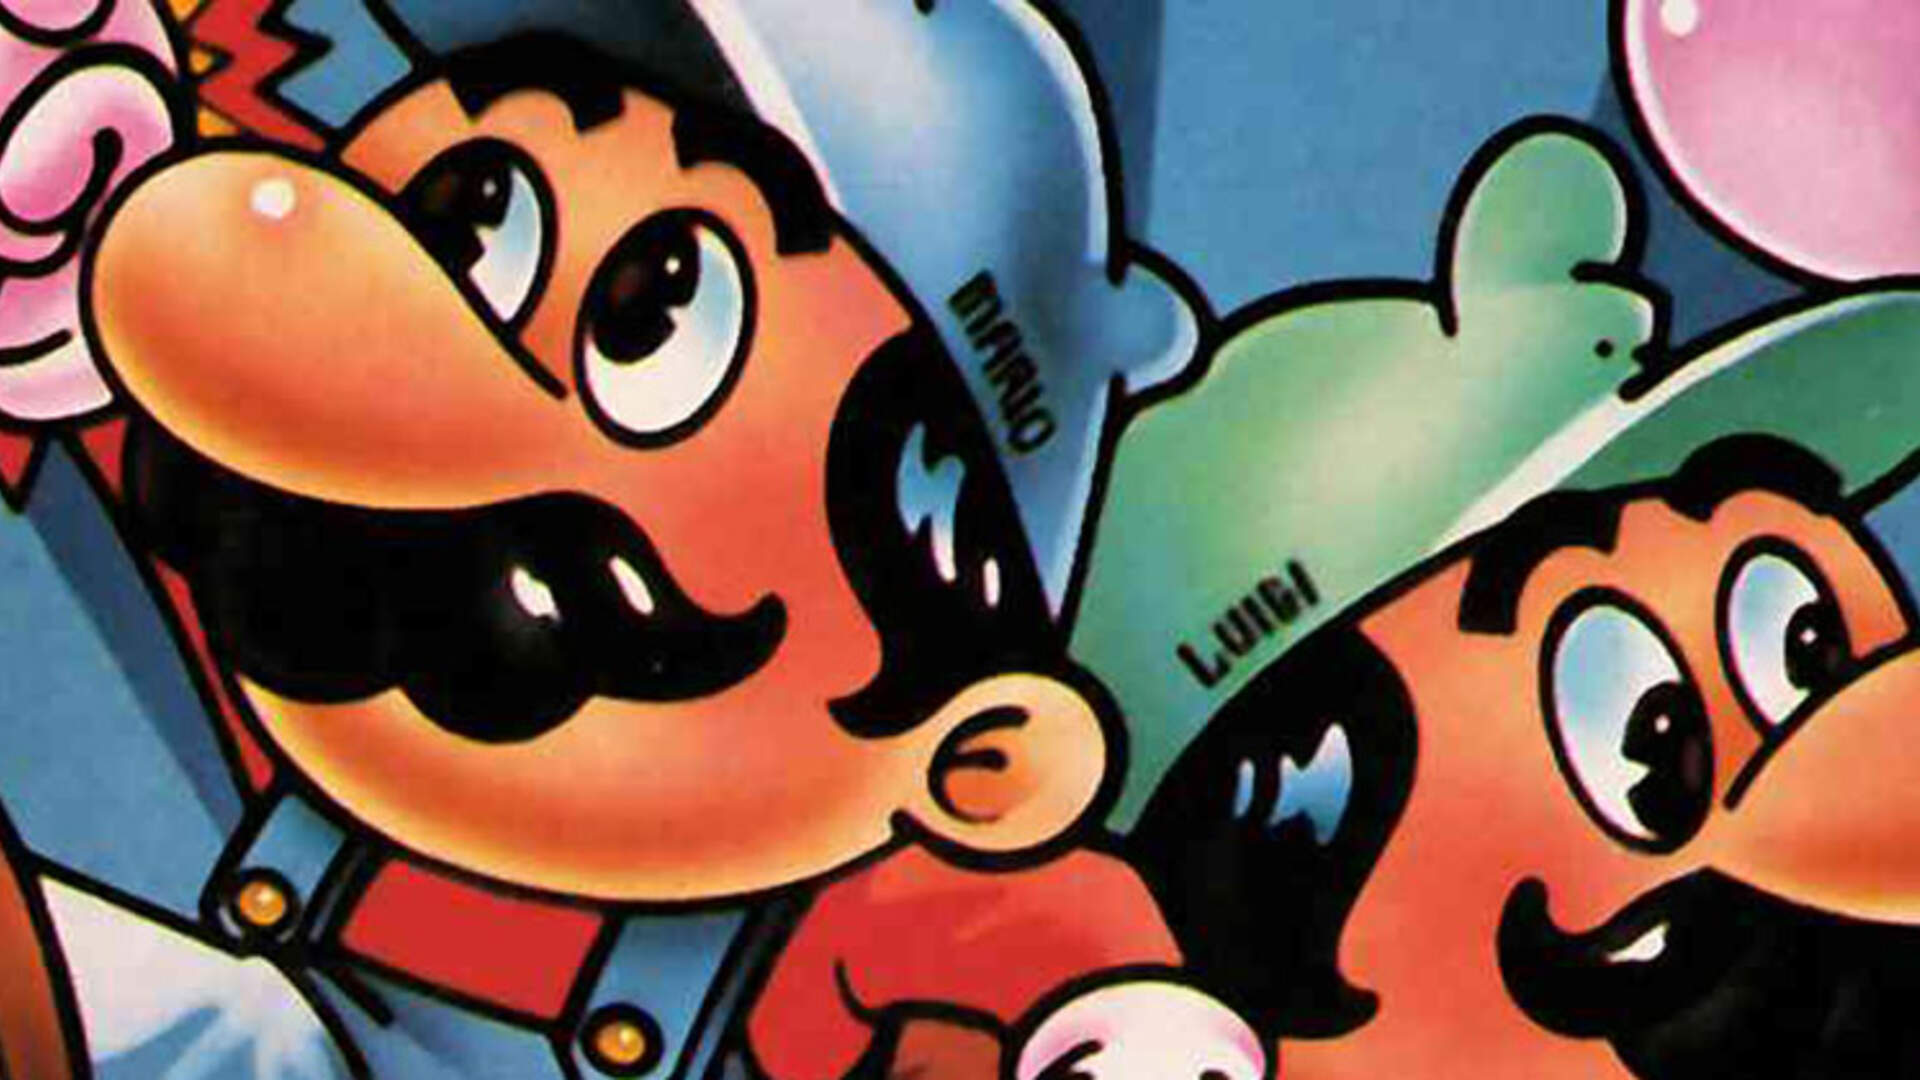 Love for the Middle Child: Mario Bros. Turns 30